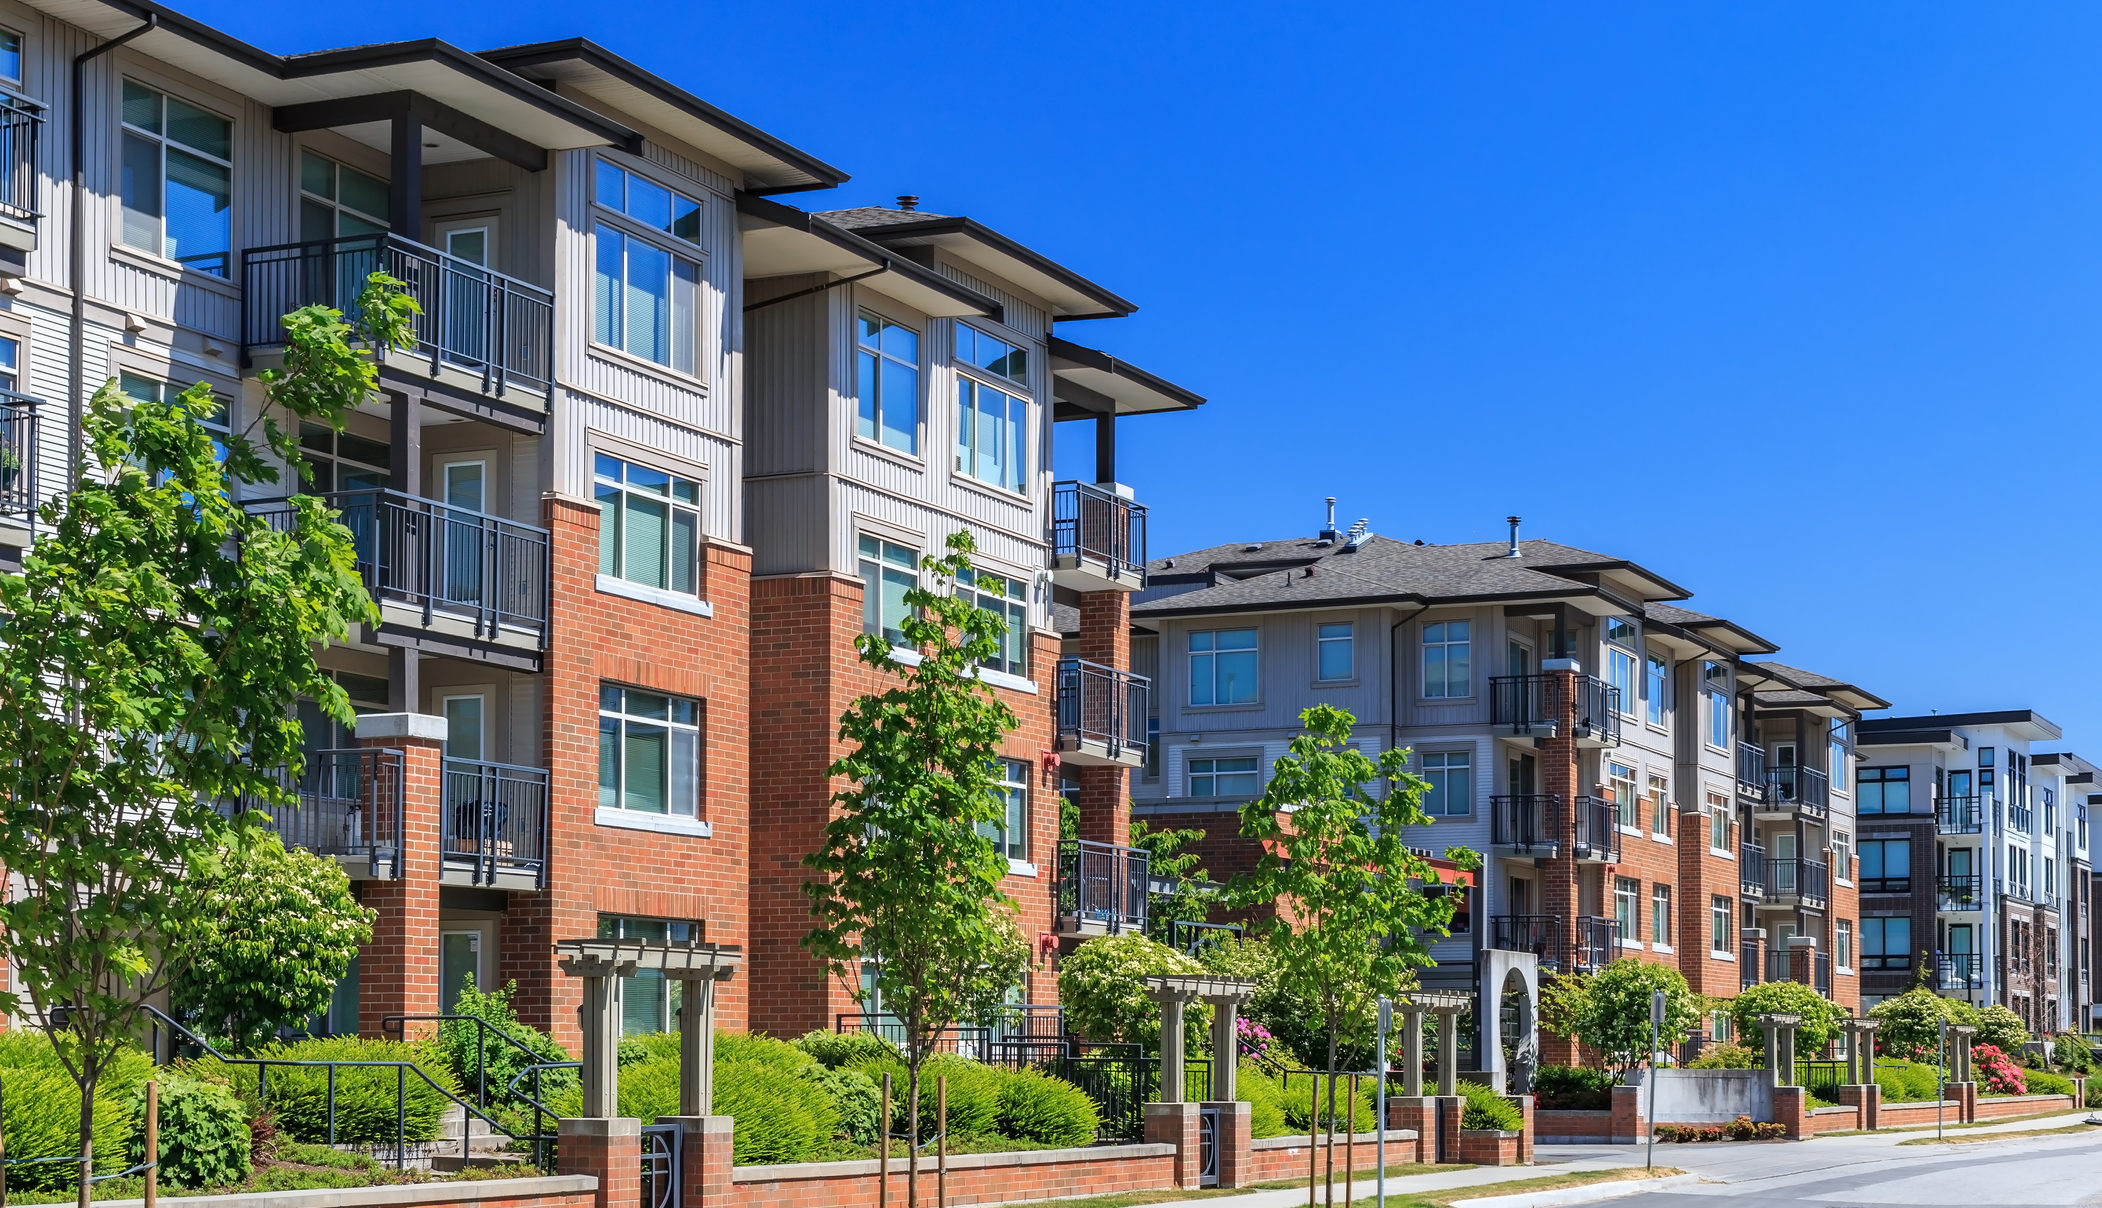 Commercial Real Estate Suwanee